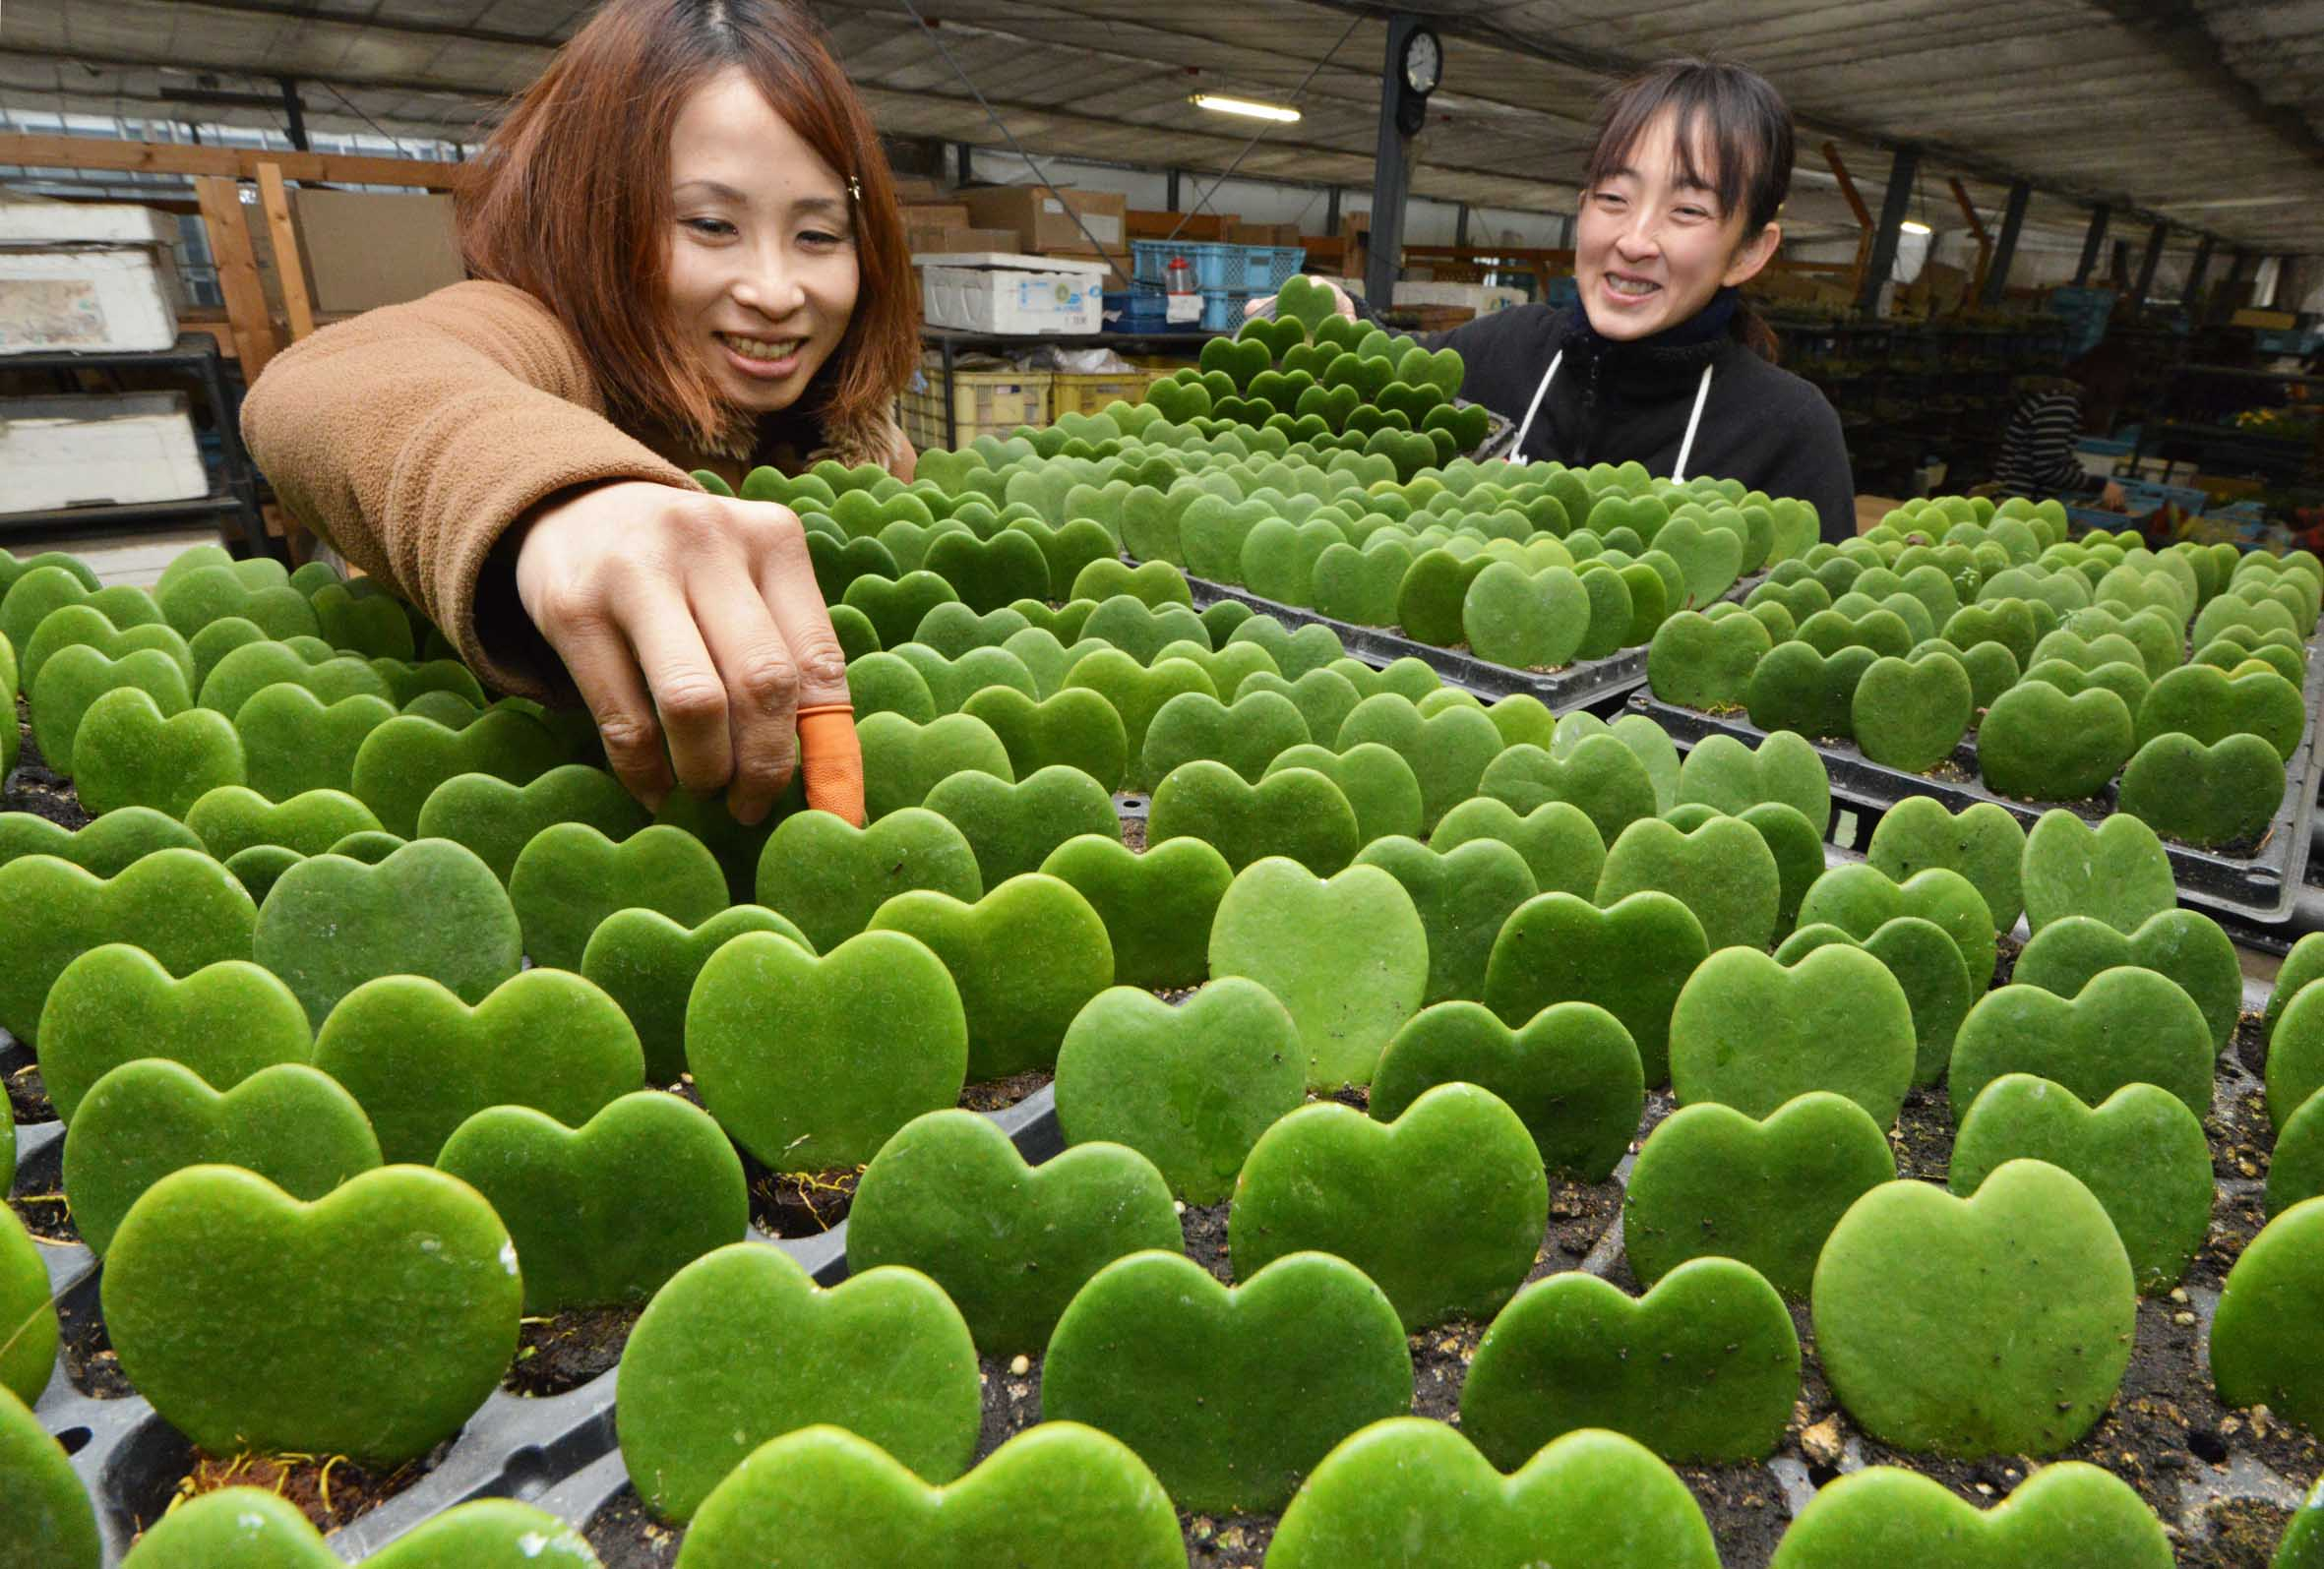 News Convey You Love With Sweetheart Plants Feb 6 2014 The